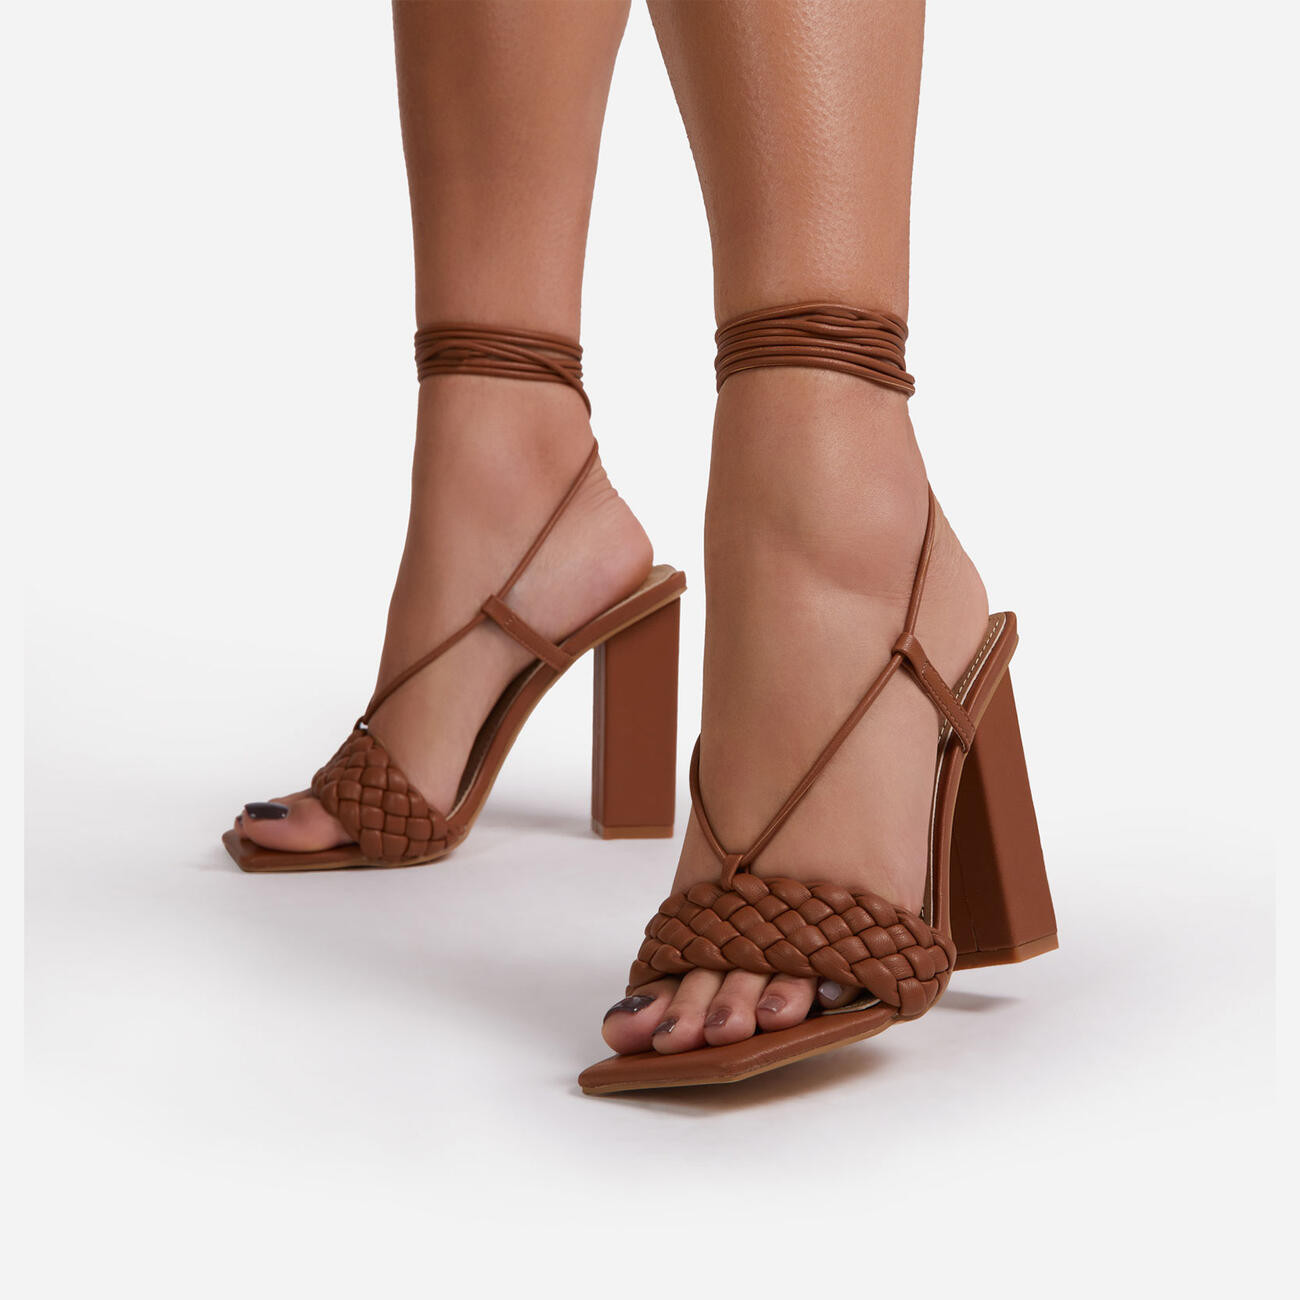 Pattaya Lace Up Square Toe Woven Block Heel In Tan Brown Faux Leather